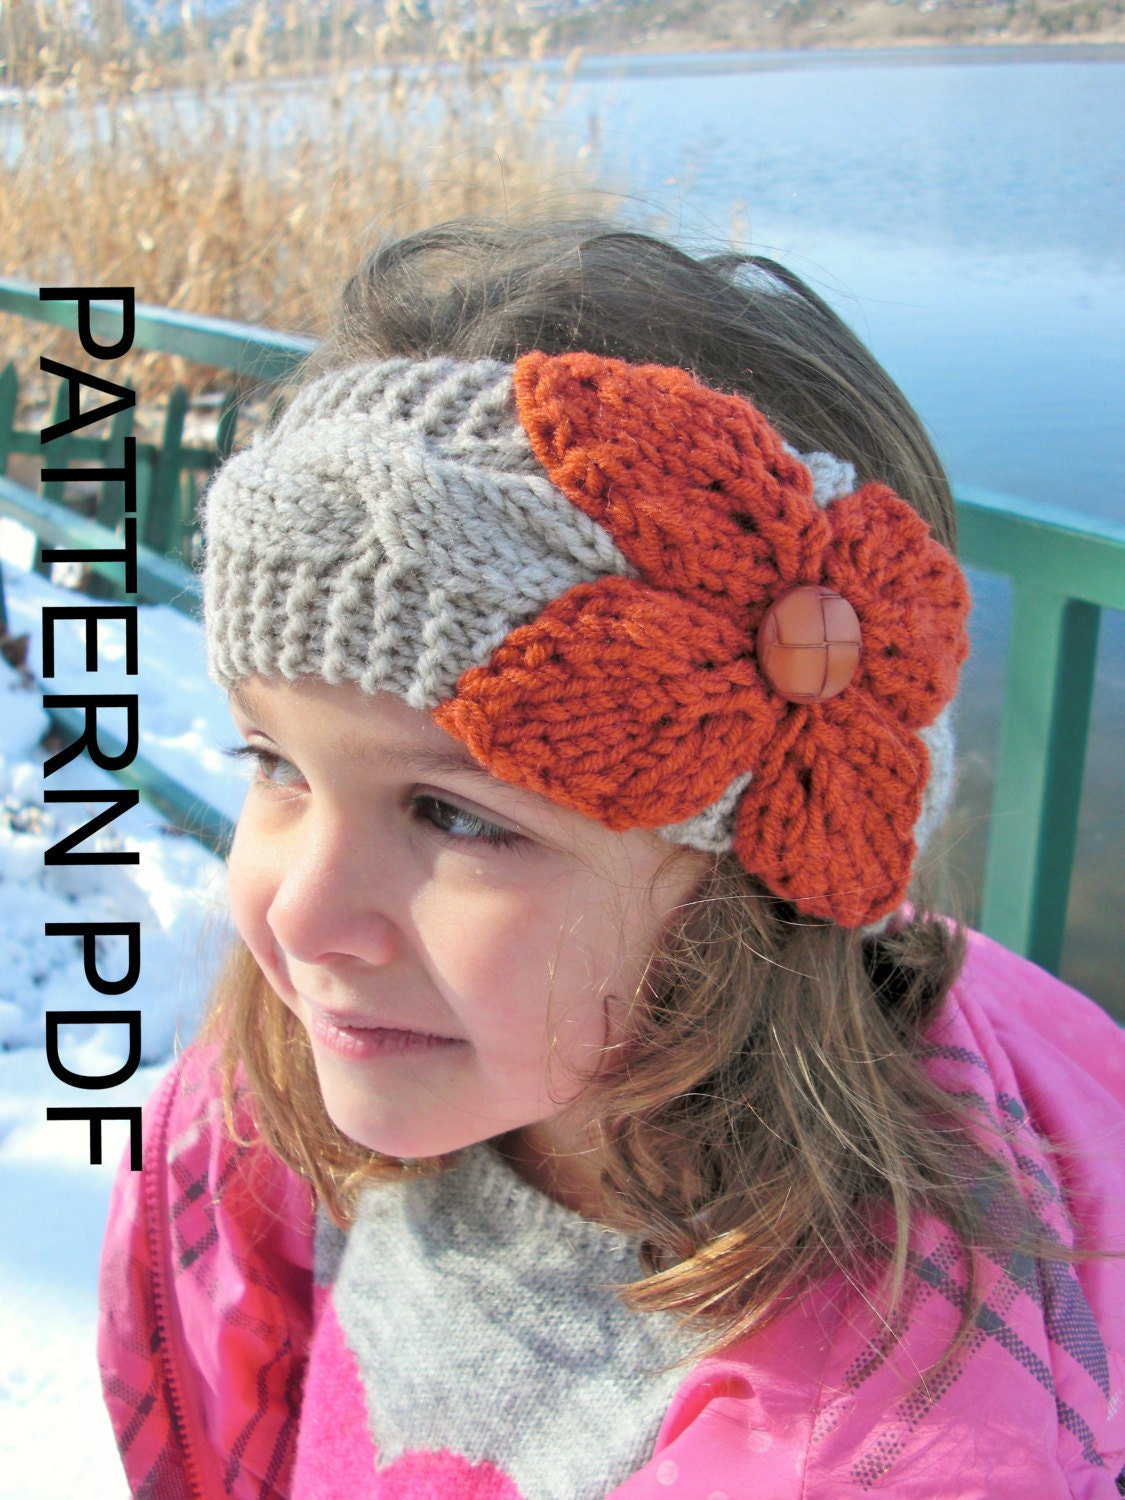 Headband Ear Warmer Knitting Pattern : Ear Warmer Headband Knitting PATTERN Instant Download Pattern